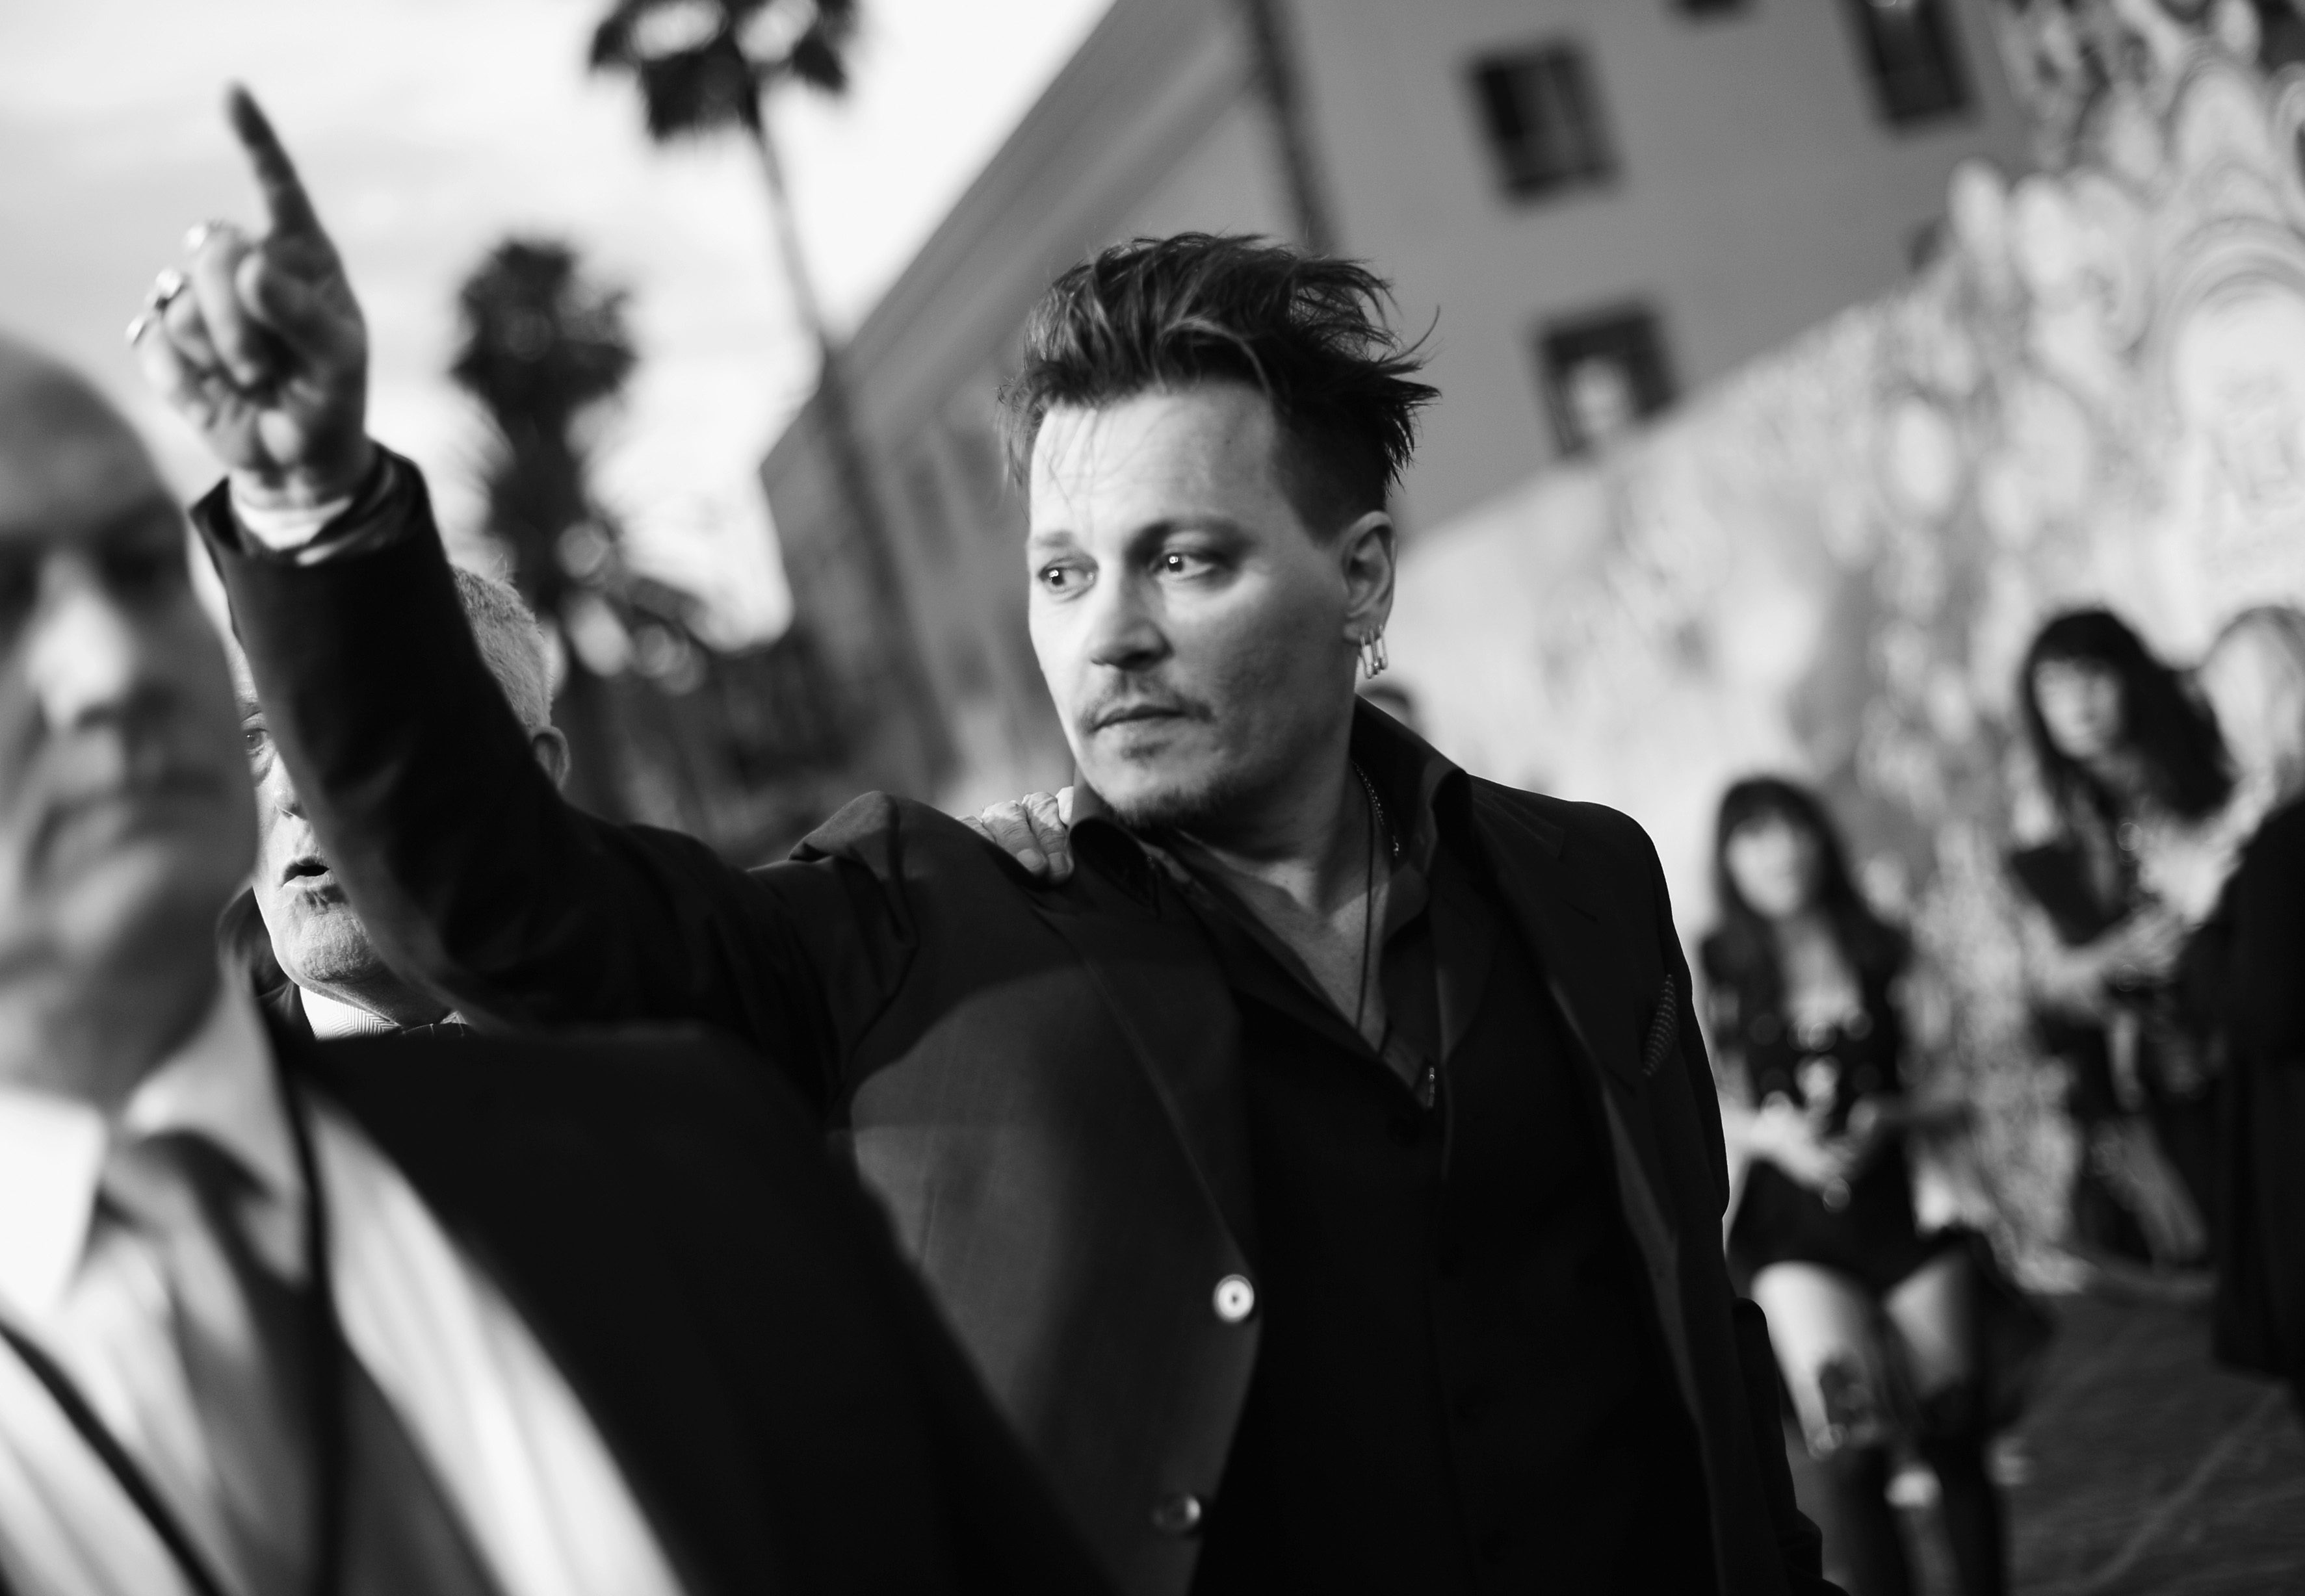 Johnny depp to play notorious b i g investigator russell poole in film